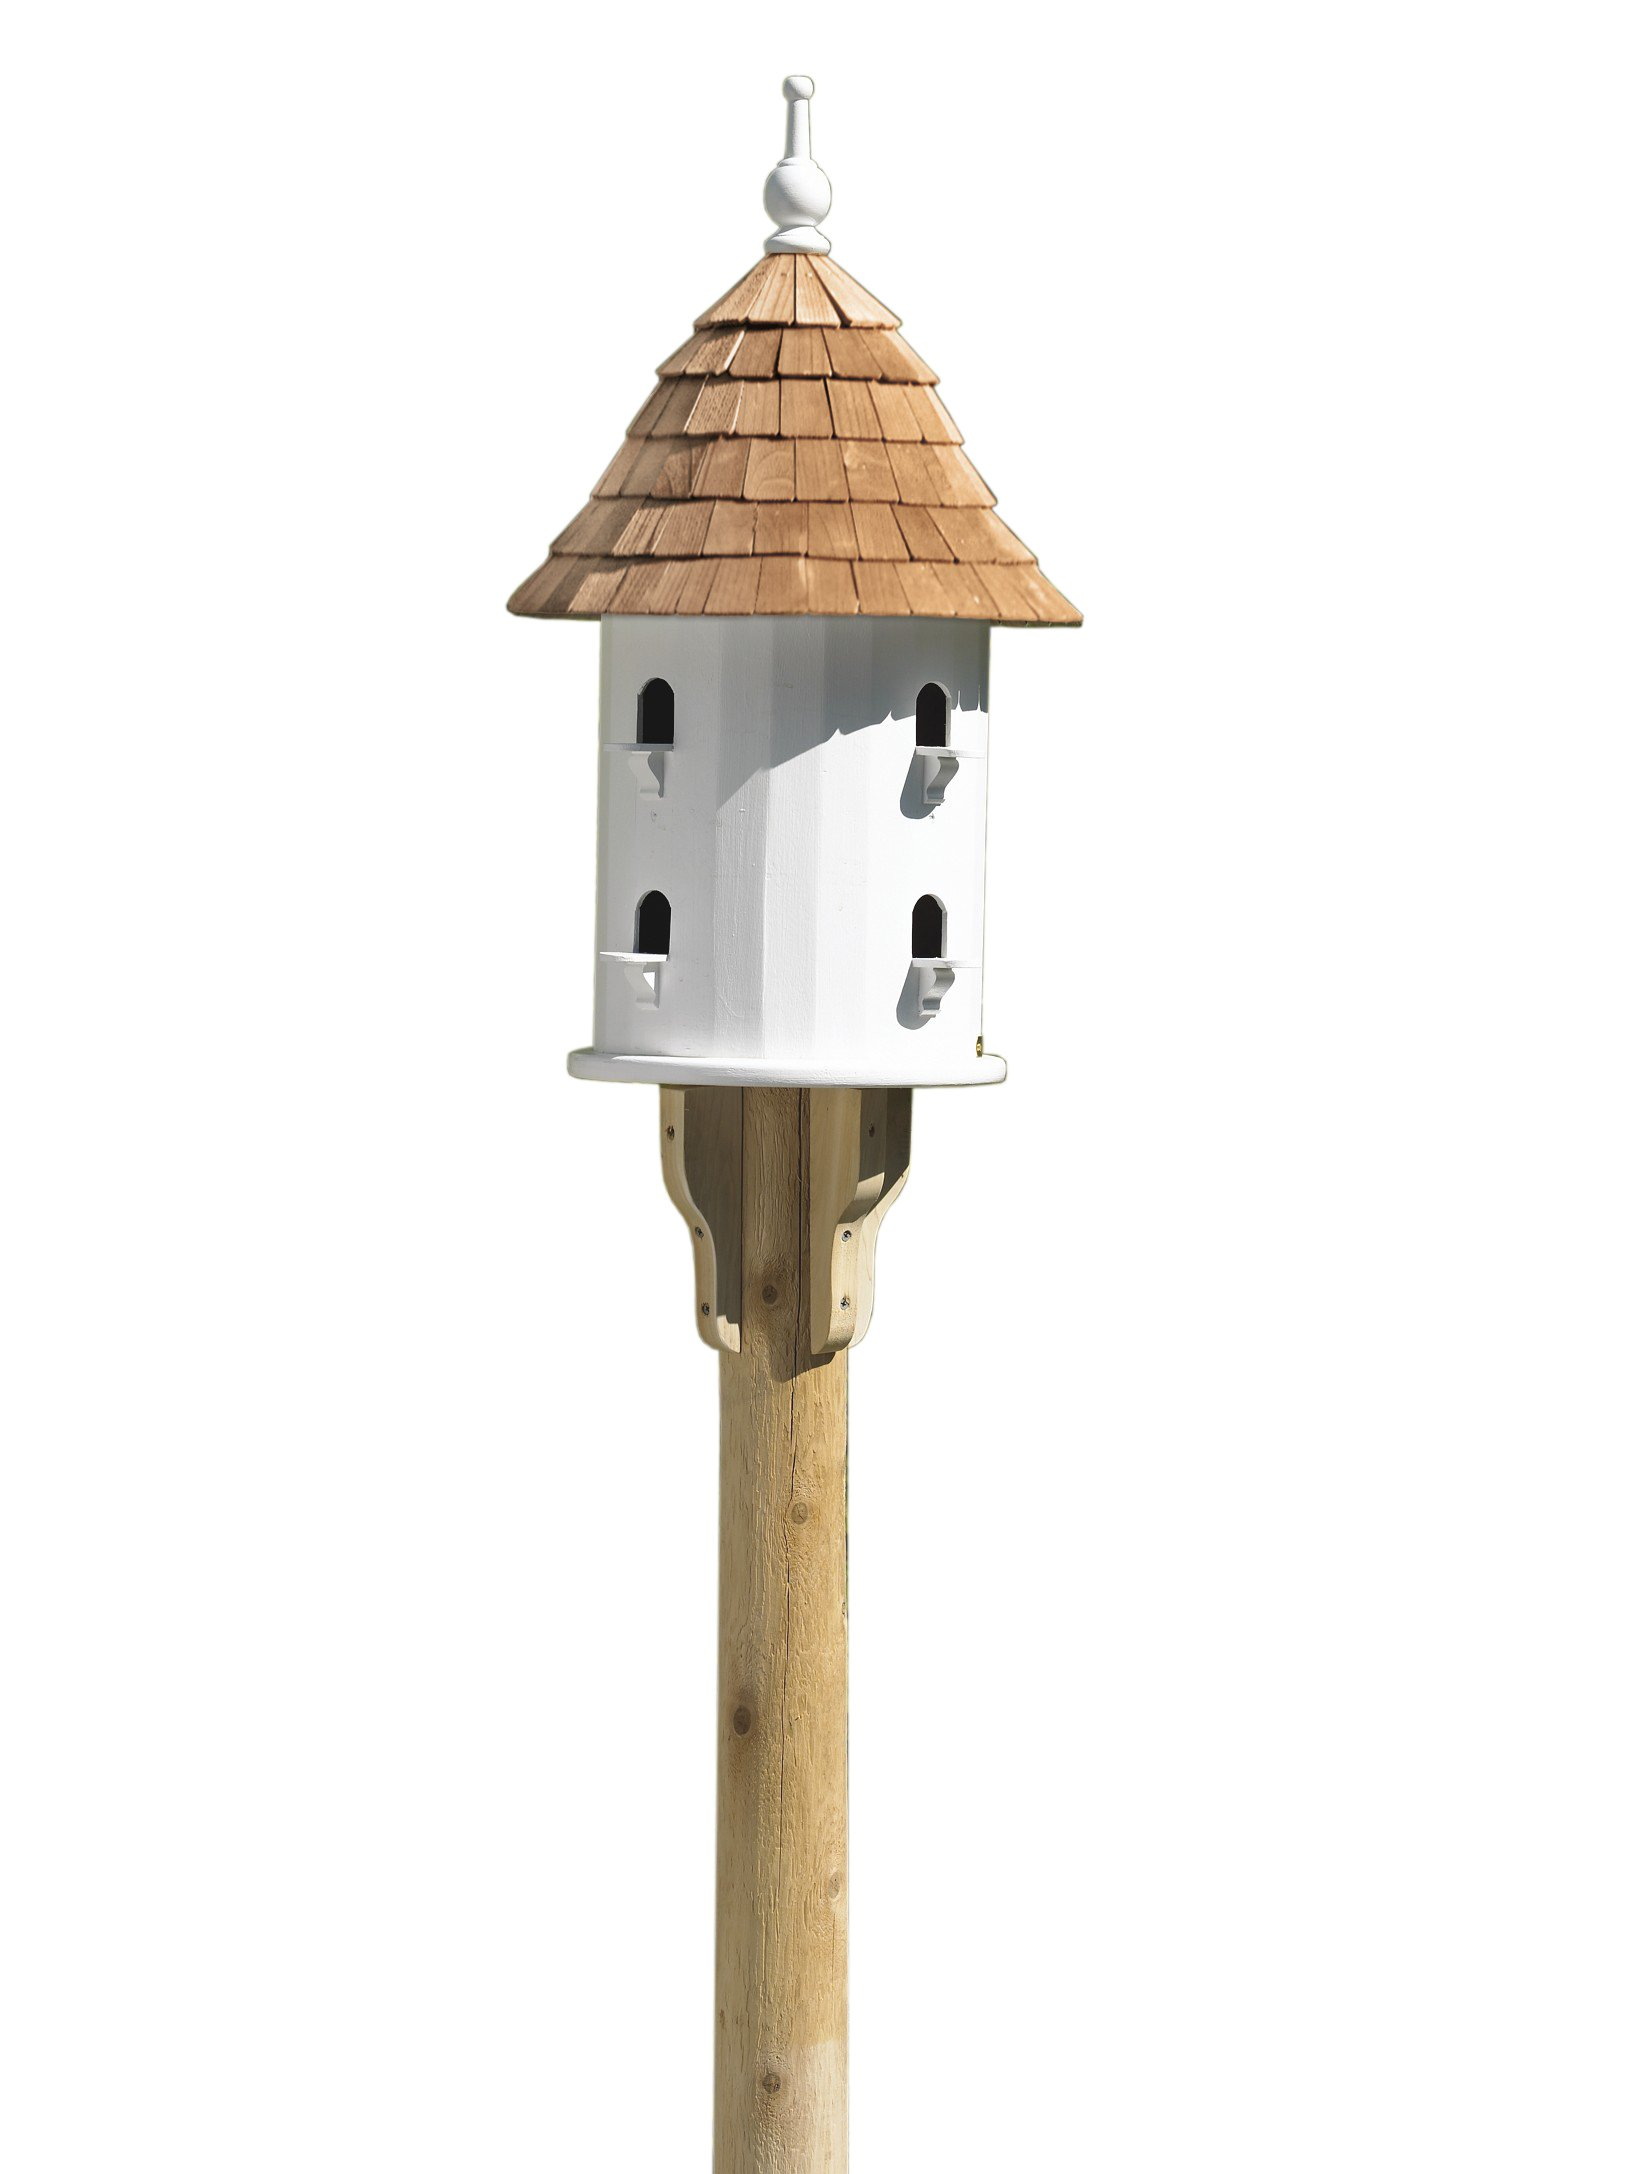 Lazy Hill Farm Designs 41401 Bird House White Solid Cellular Vinyl with Natural Redwood Shingle Roof, 16-Inch Wide by 28-Inch Tall by Good Directions